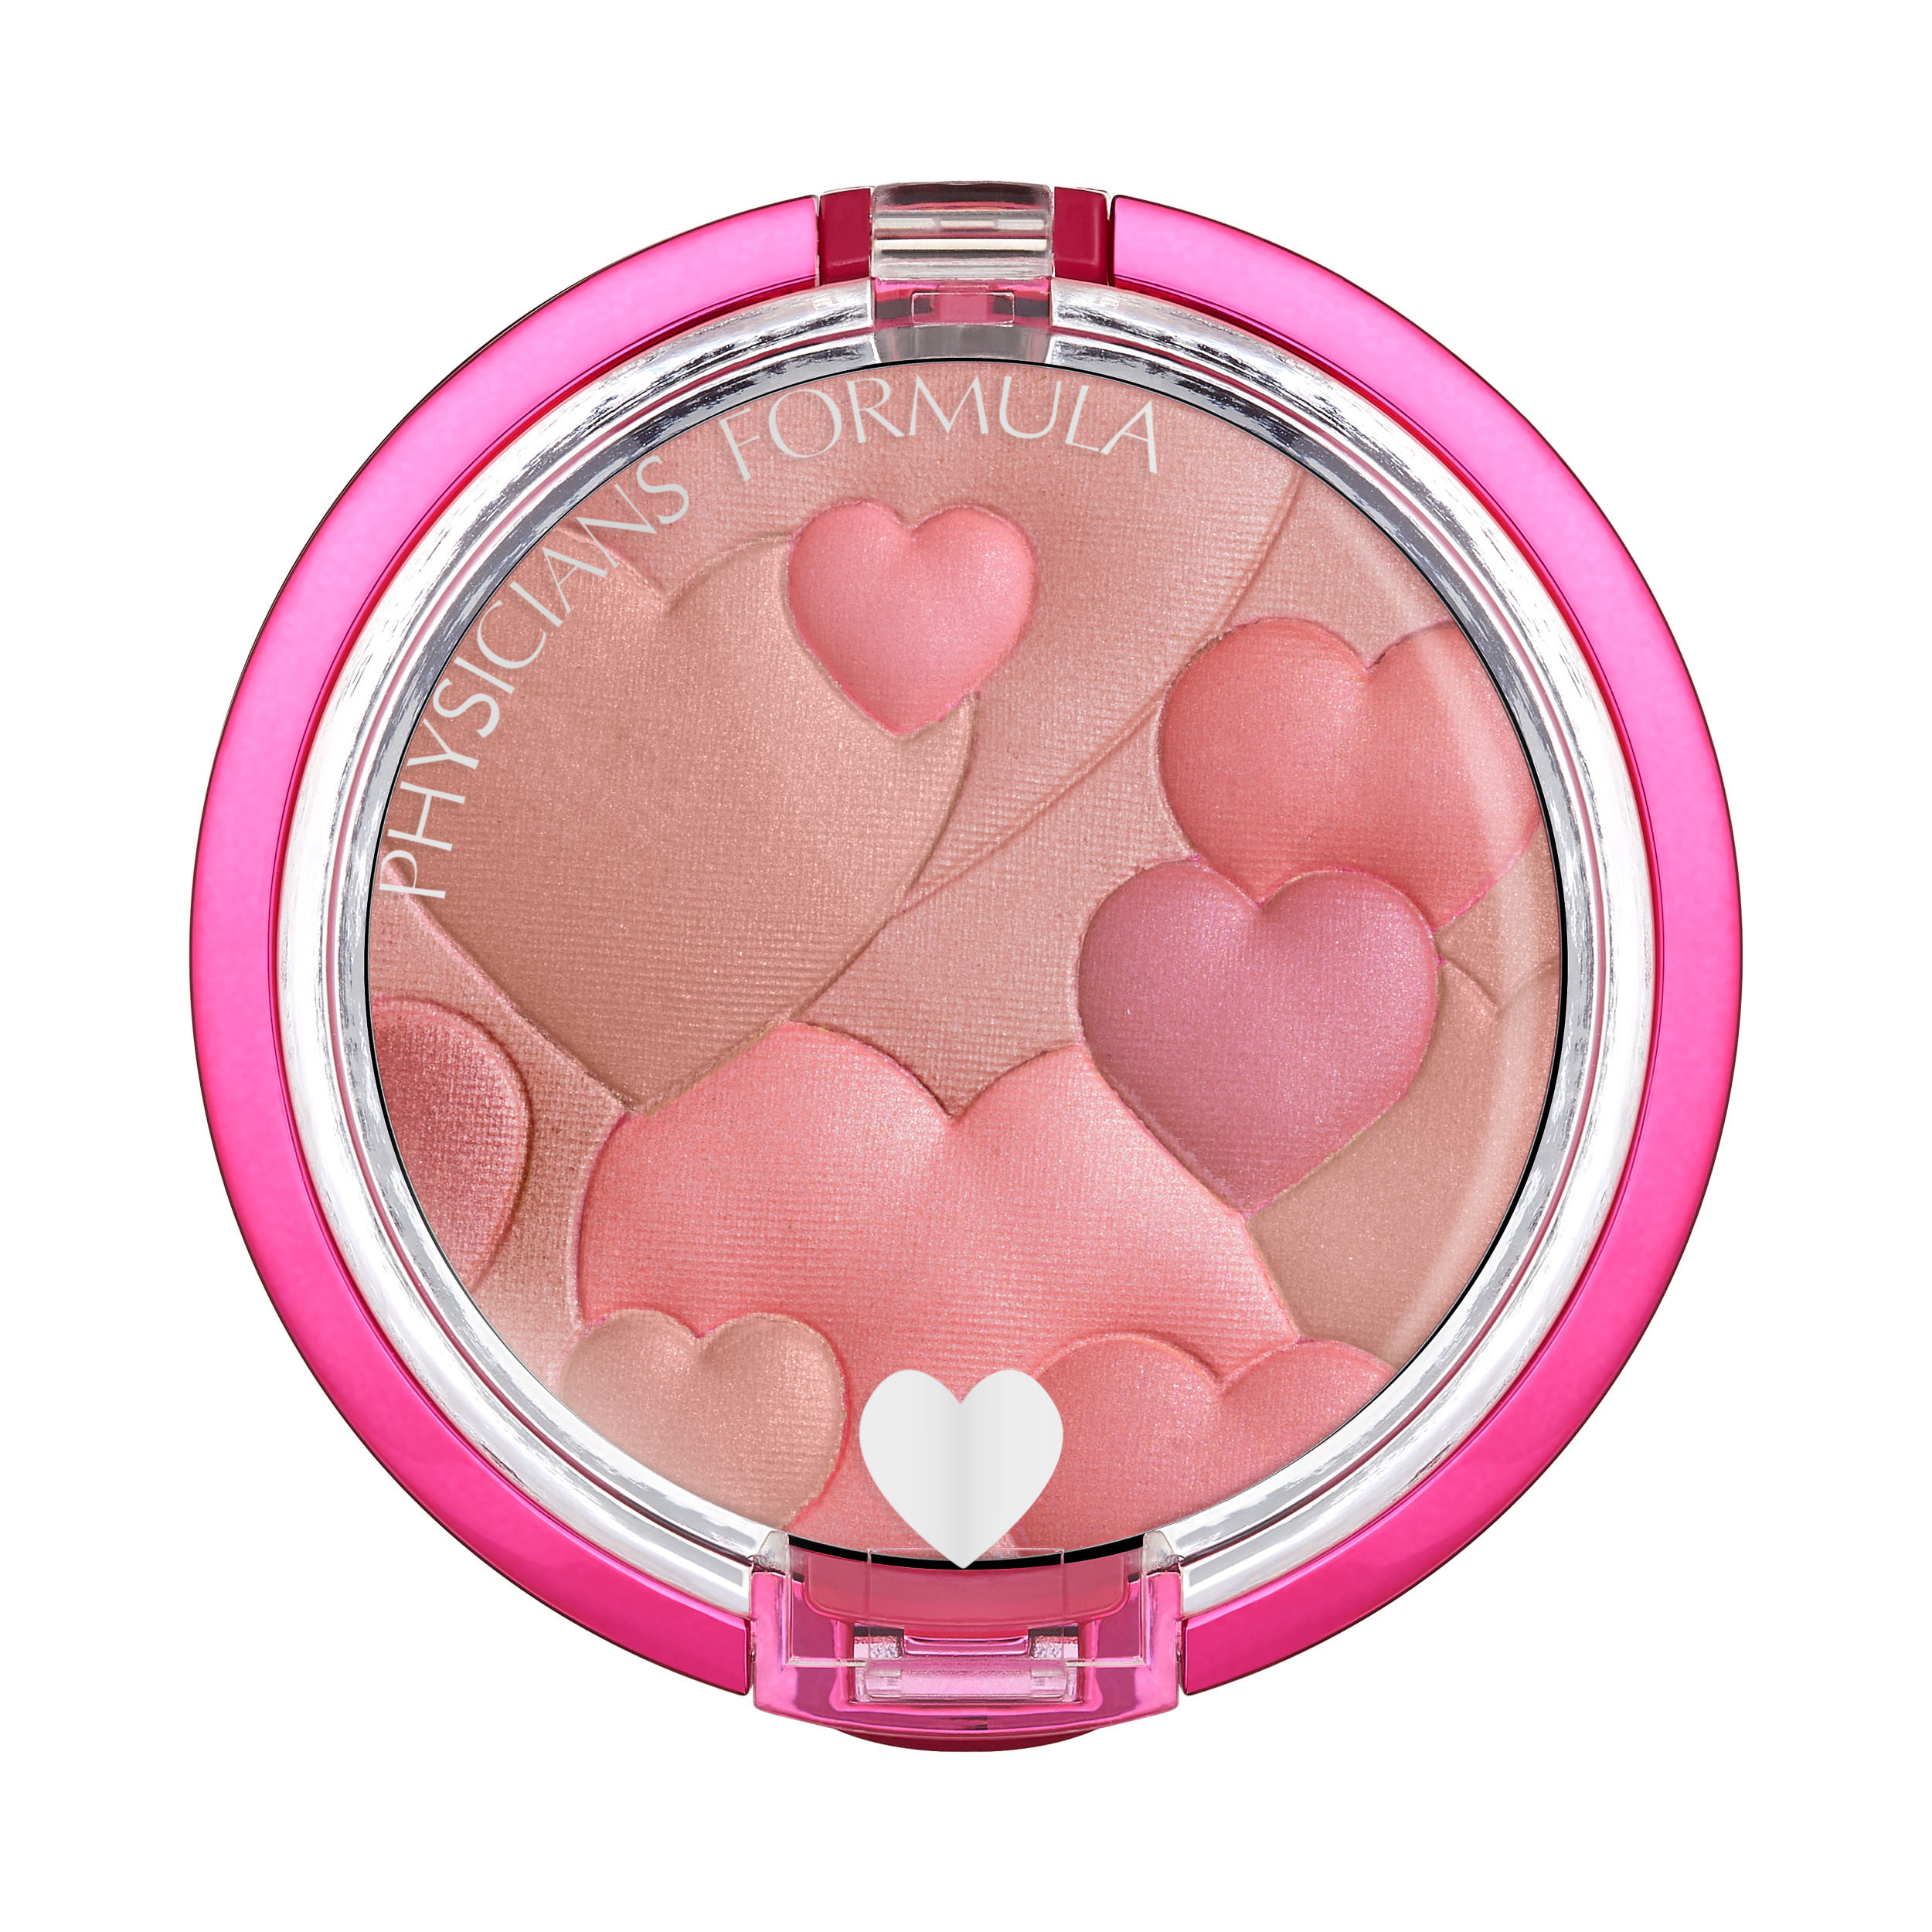 Physicians Formula Happy Booster 2 Happy Glow Multi-Colored Blush - Natural